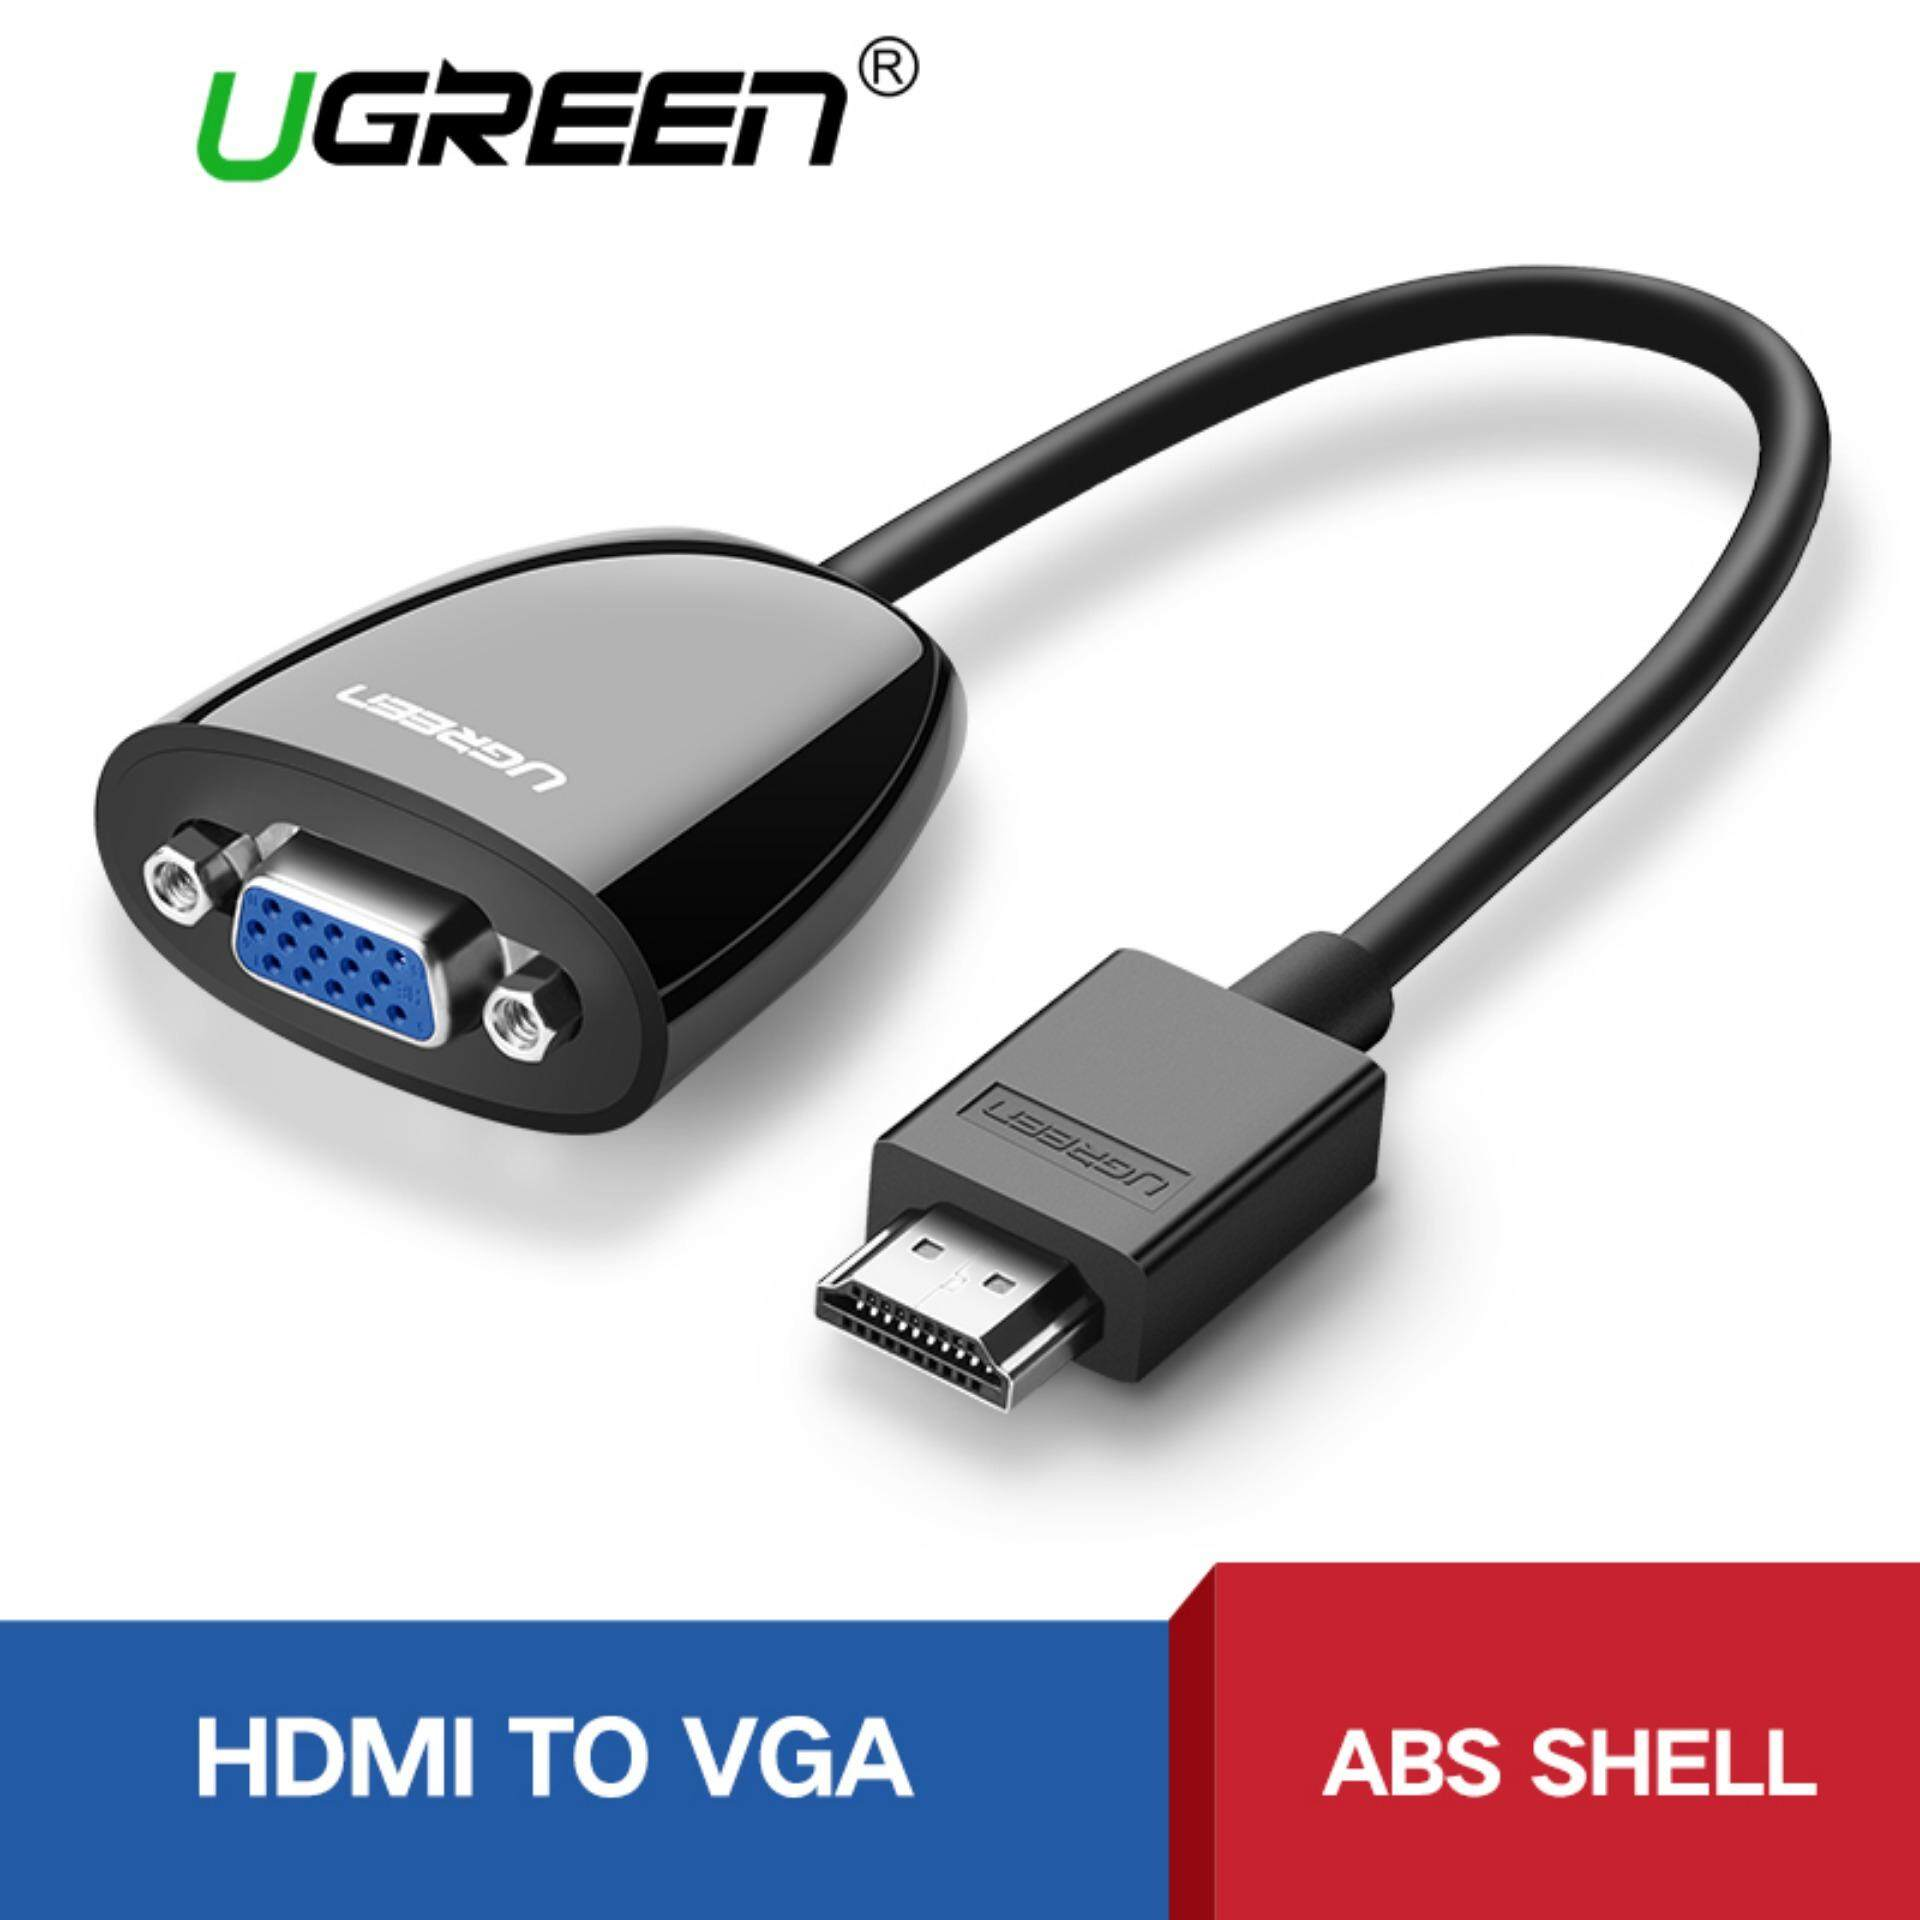 UGREEN HDMI to VGA Adapter Supprot 1920*1080P Compatible Laptop Projector - Black